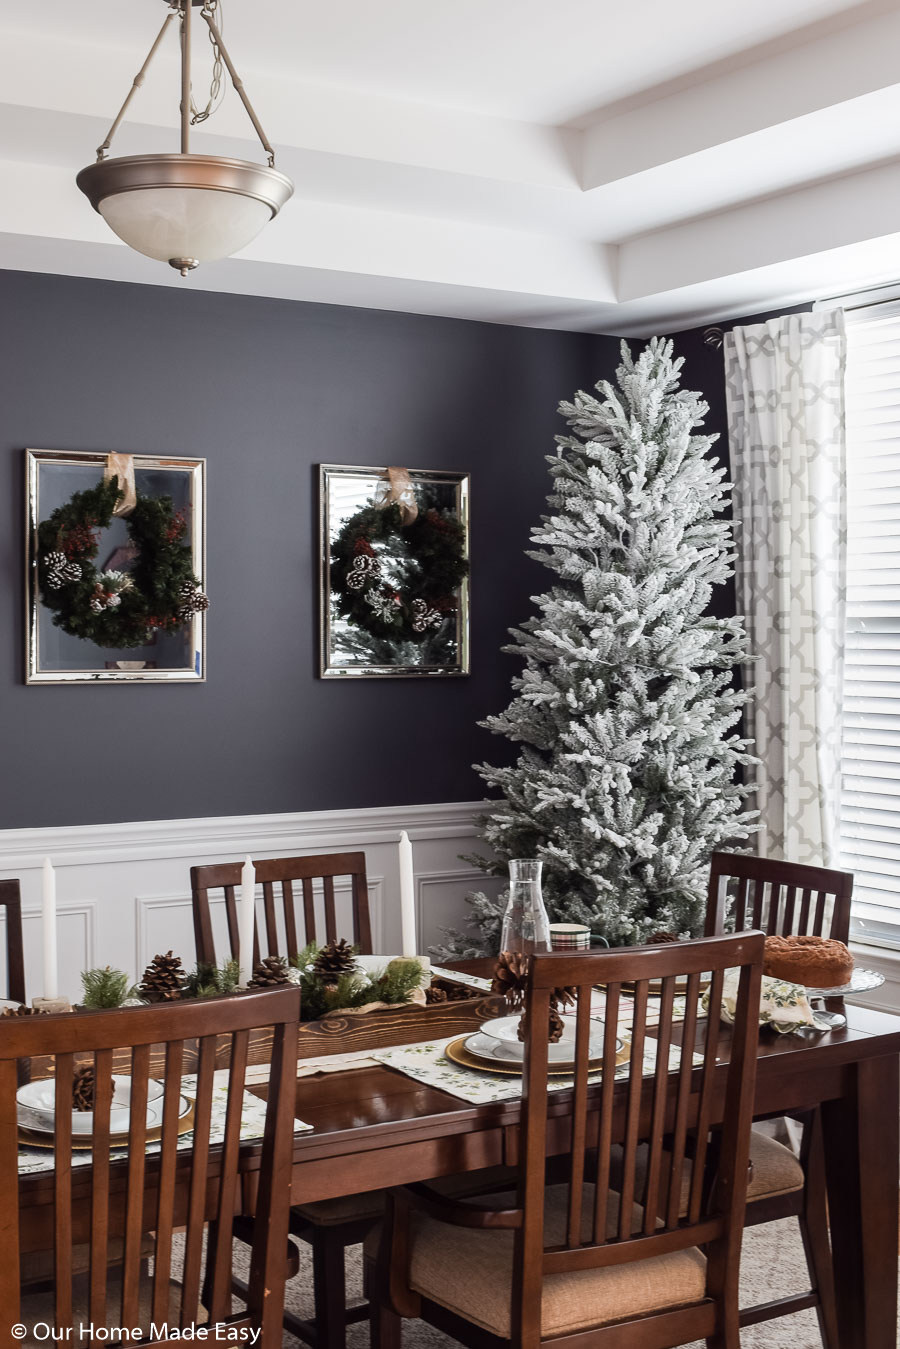 Our bright Christmas dining room has simple Christmas decor that brightens up the room